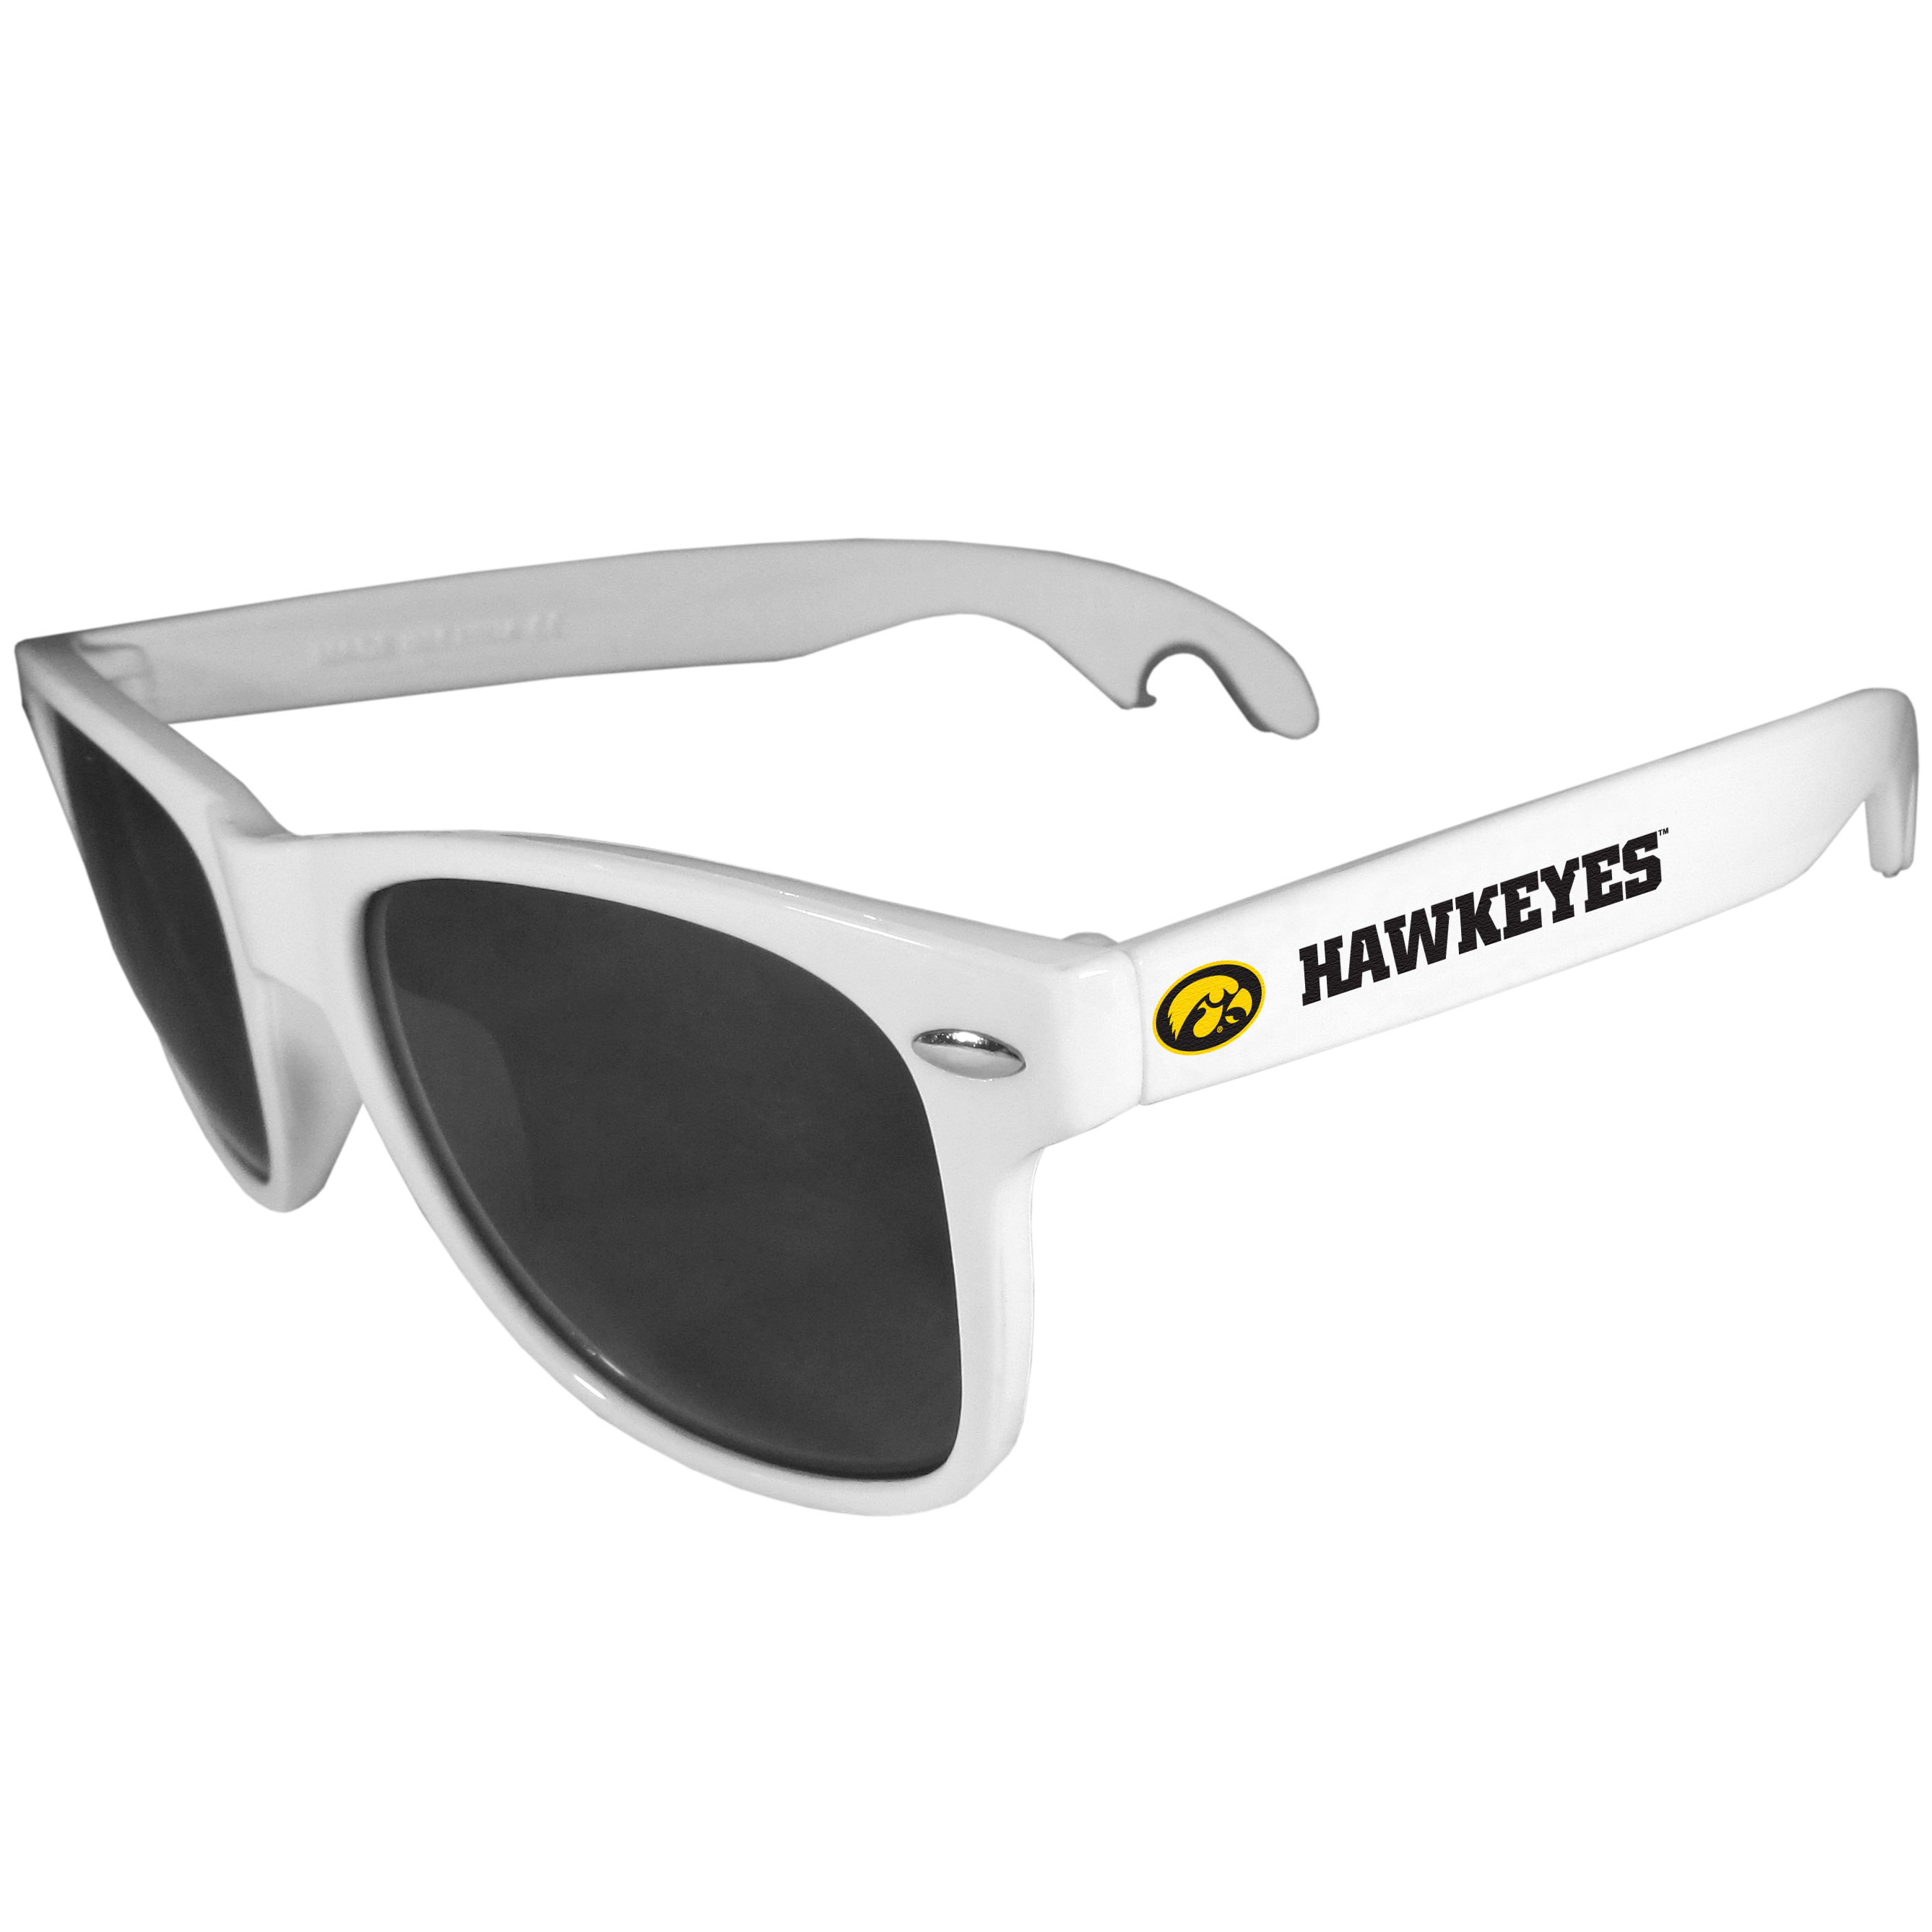 Iowa Hawkeyes Beachfarer Bottle Opener Sunglasses, White - Seriously, these sunglasses open bottles! Keep the party going with these amazing Iowa Hawkeyes bottle opener sunglasses. The stylish retro frames feature team designs on the arms and functional bottle openers on the end of the arms. Whether you are at the beach or having a backyard BBQ on game day, these shades will keep your eyes protected with 100% UVA/UVB protection and keep you hydrated with the handy bottle opener arms.